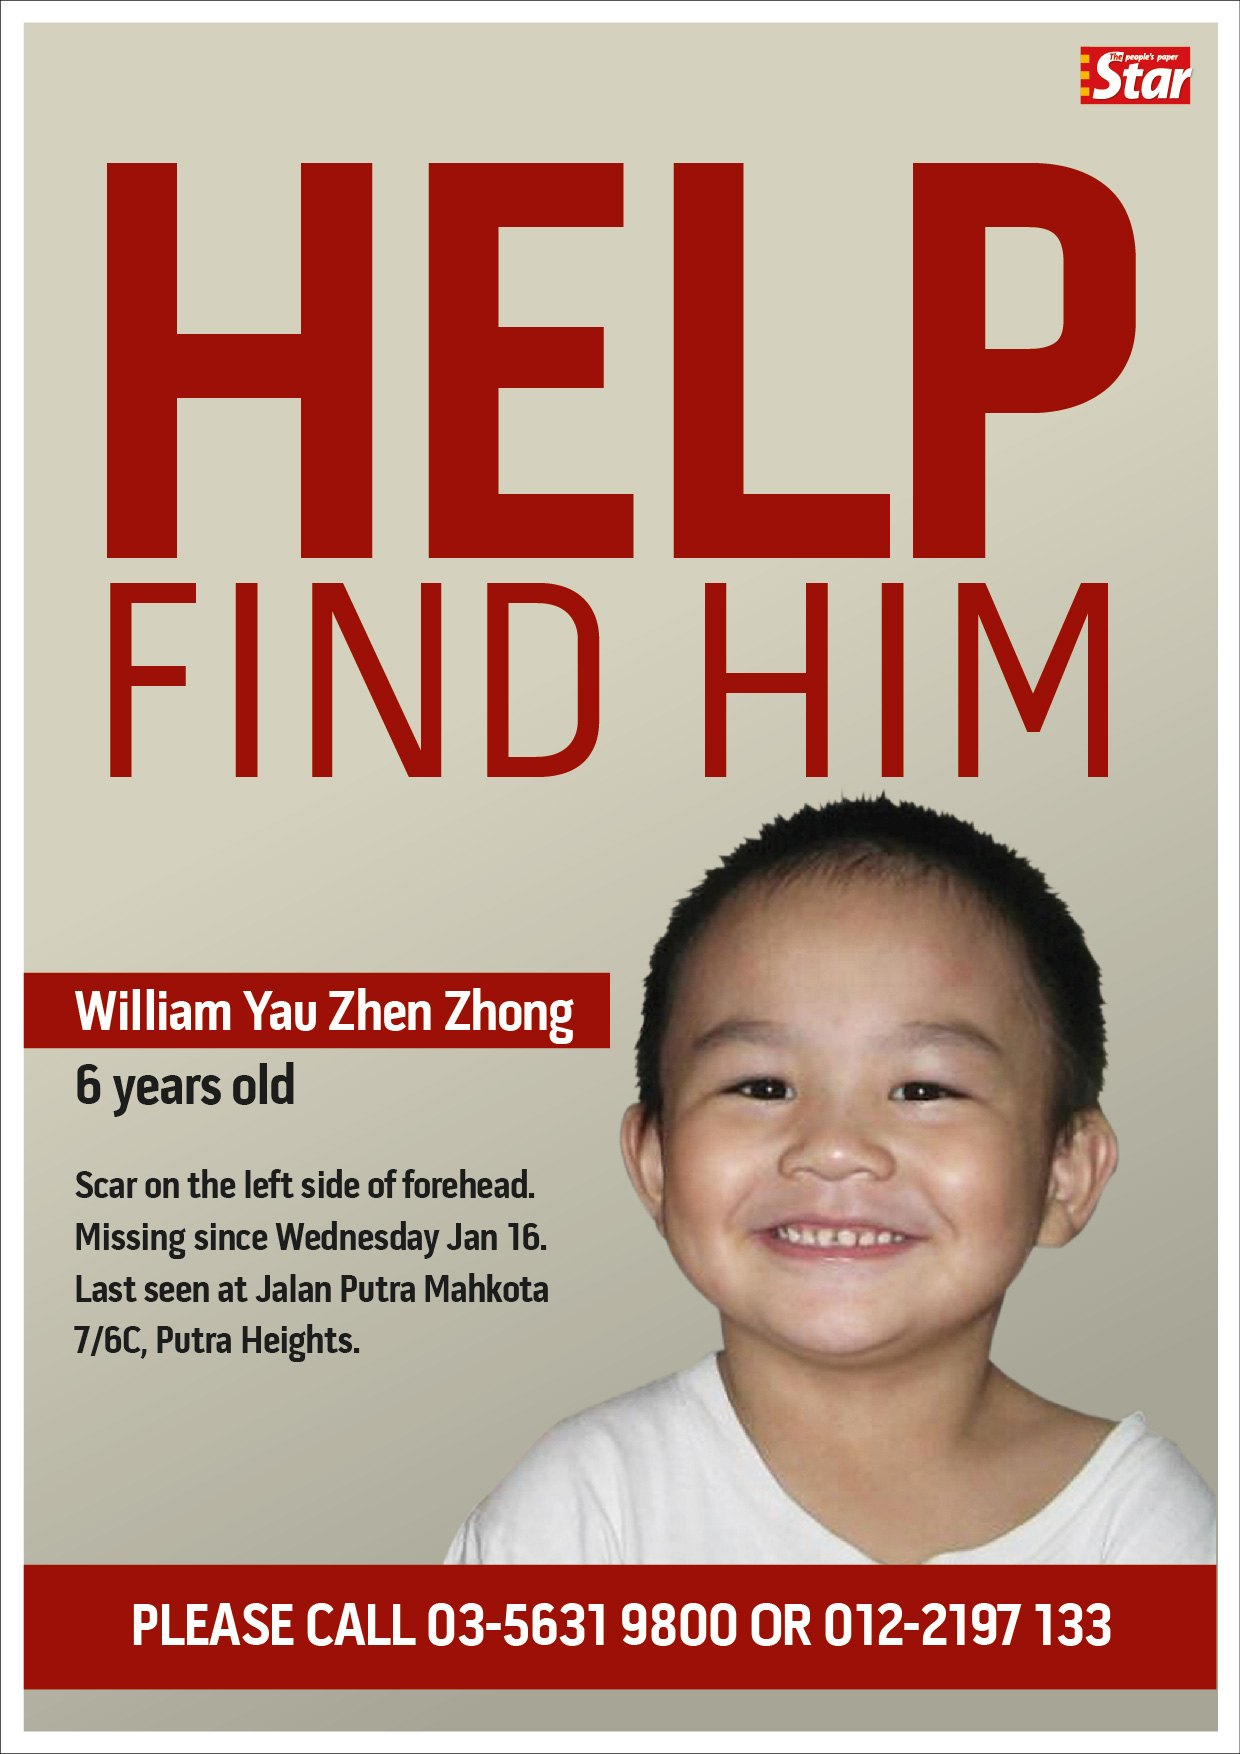 Missing-person-malaysian-william-yau-zhen-zhong,william you,missing person